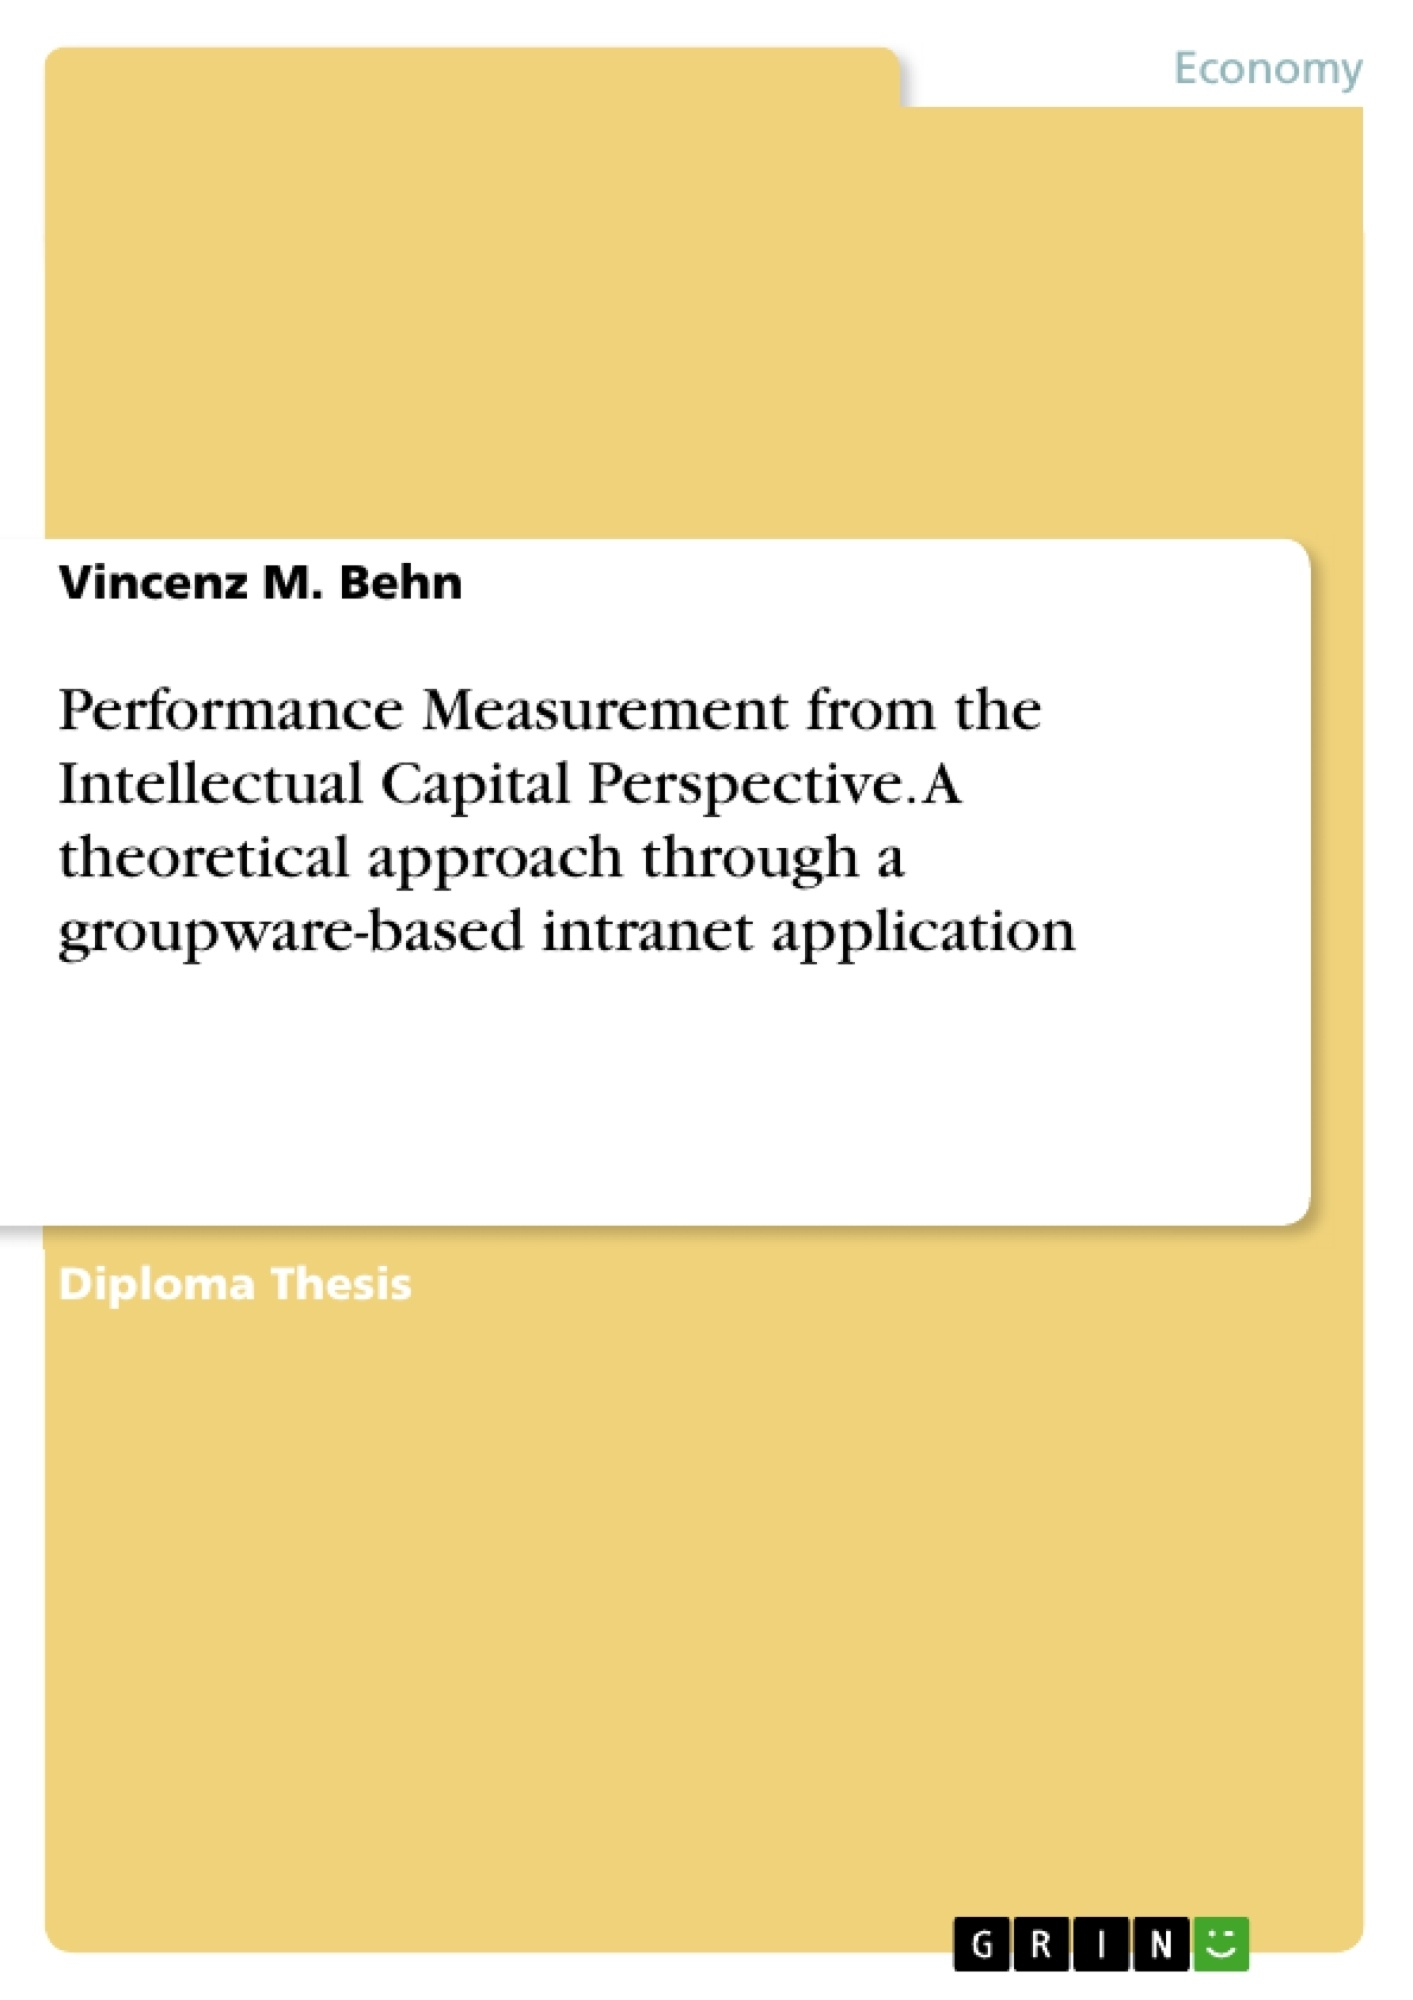 Title: Performance Measurement from the Intellectual Capital Perspective. A theoretical approach through a groupware-based intranet application